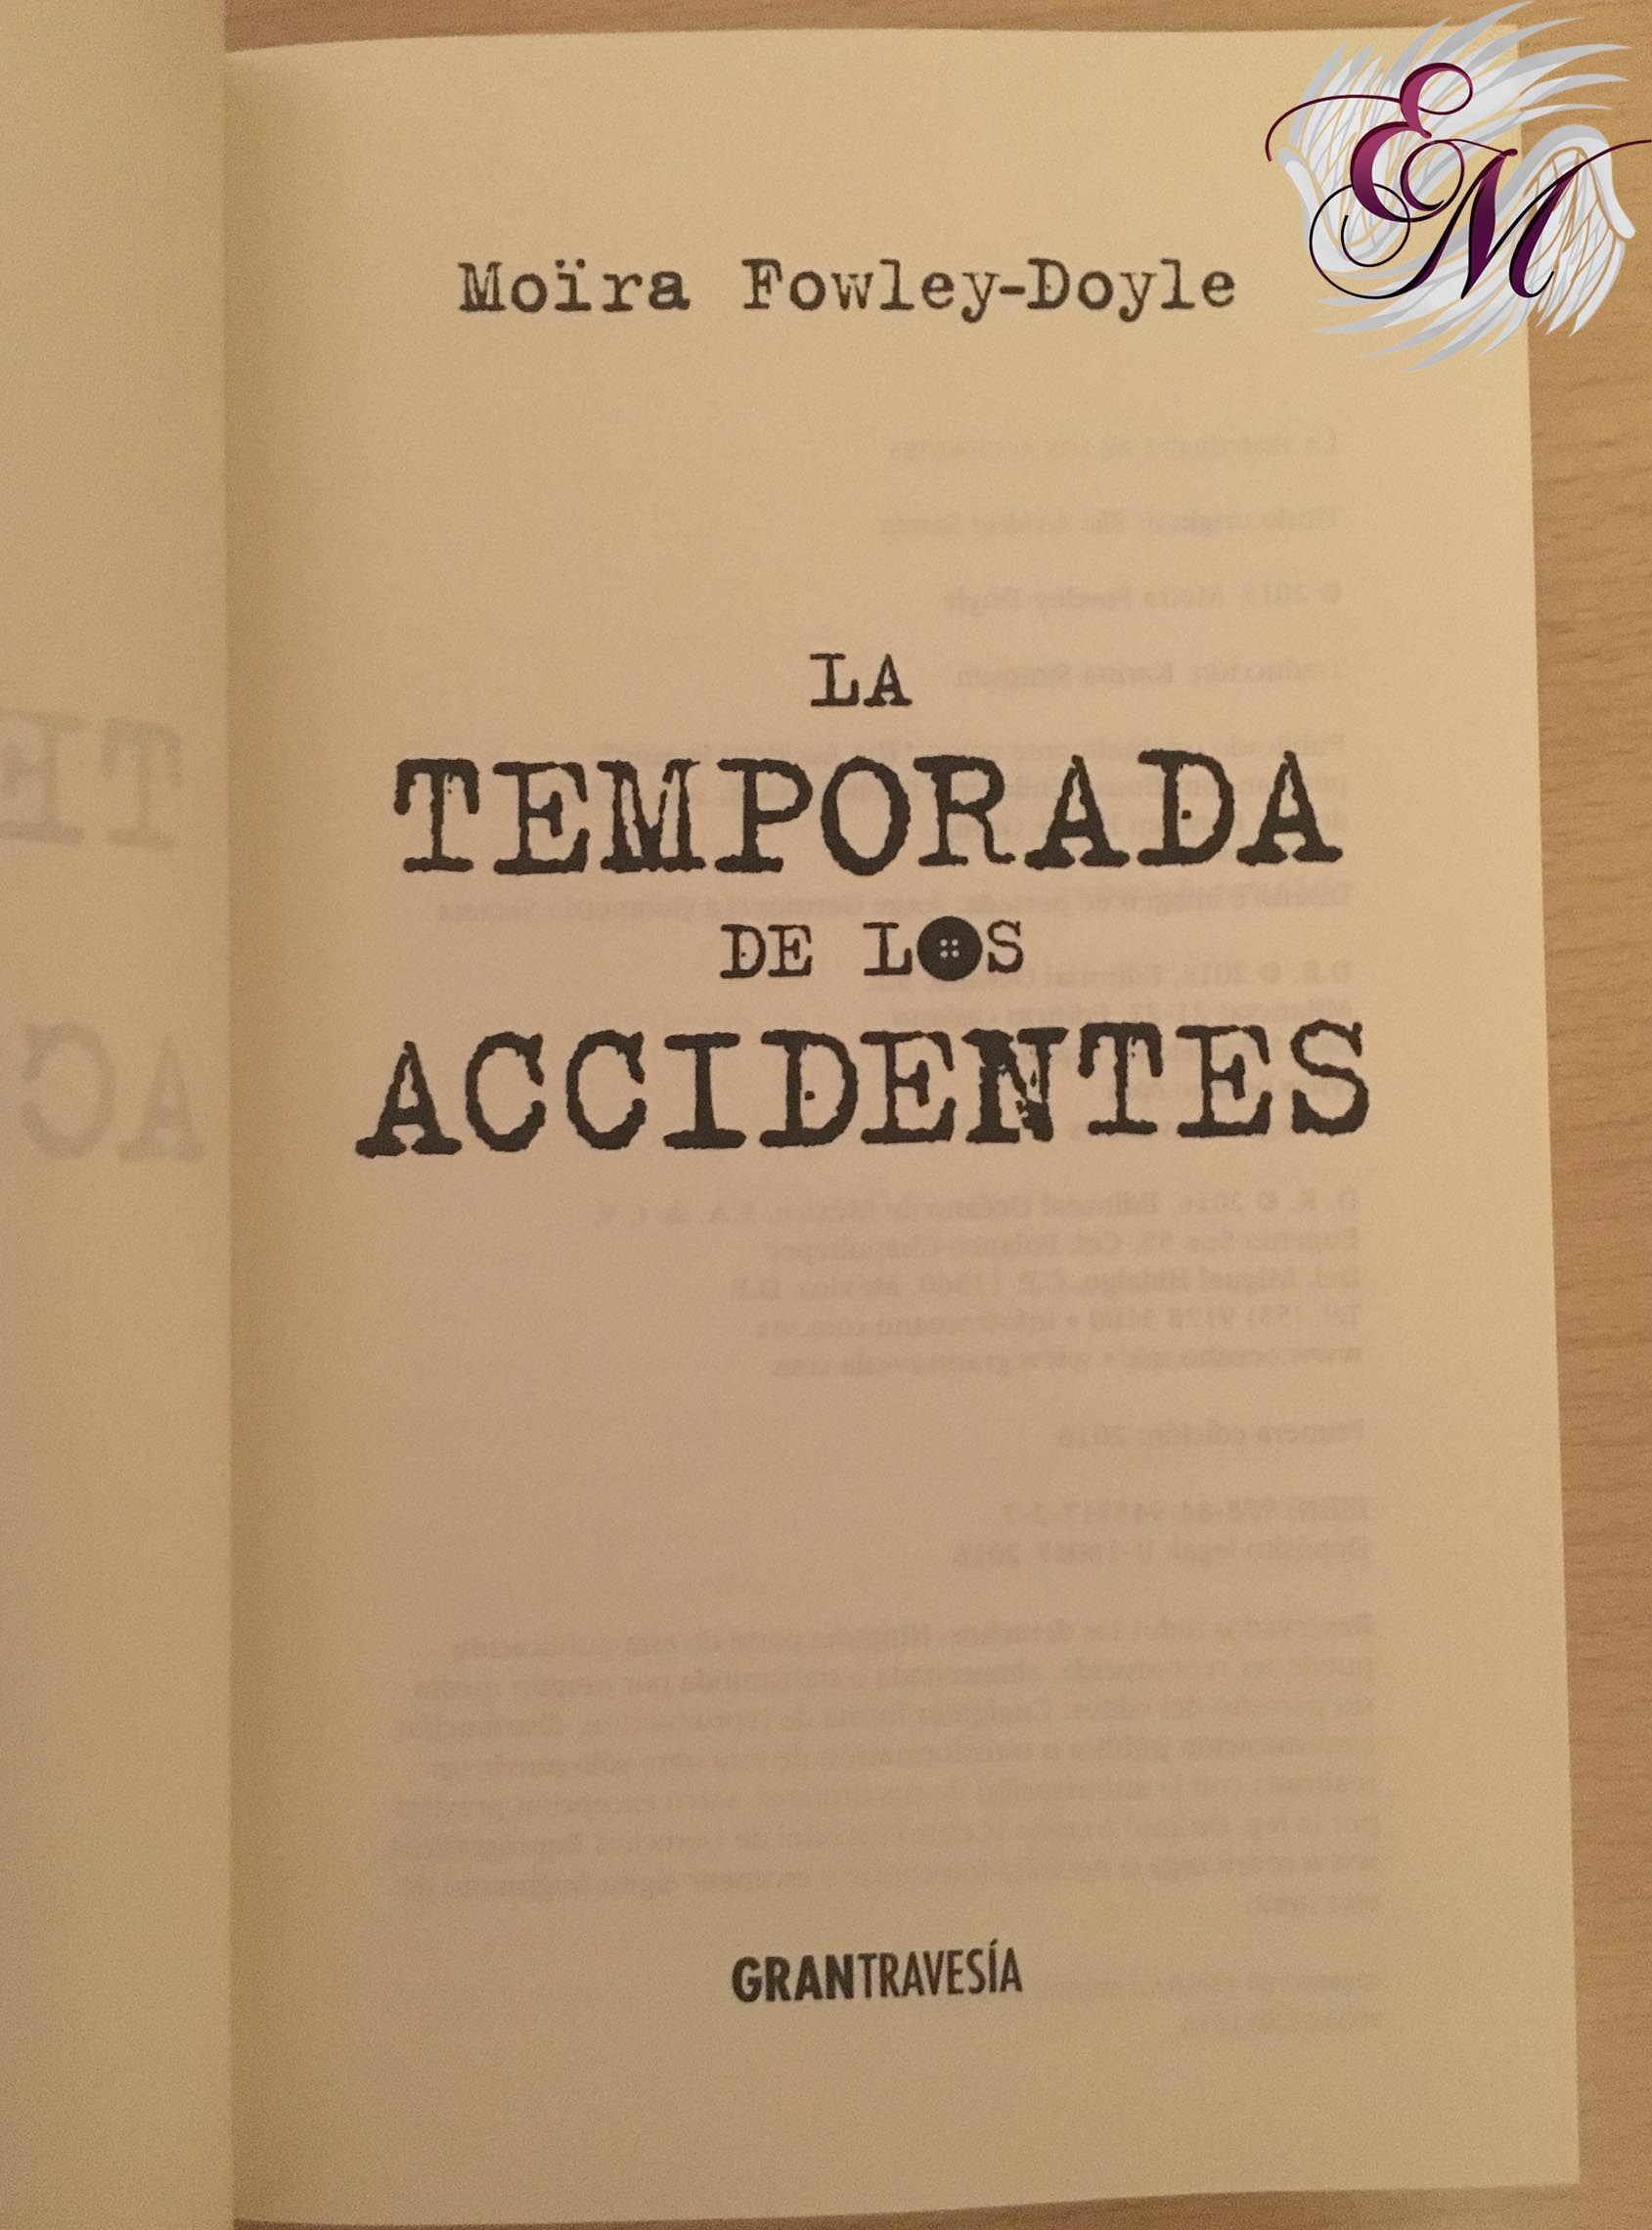 La temporada de los accidentes, de Moïra Fowley-Doyle - Reseña